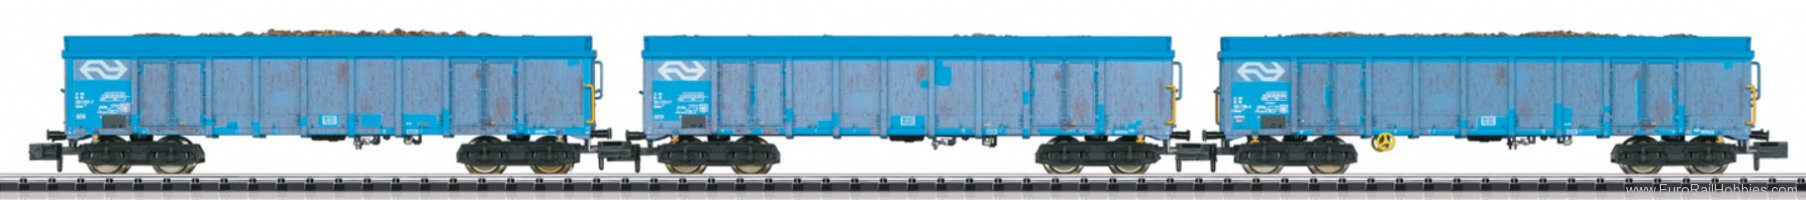 Minitrix 15994 NS Wood Chips Transport Freight Car Set